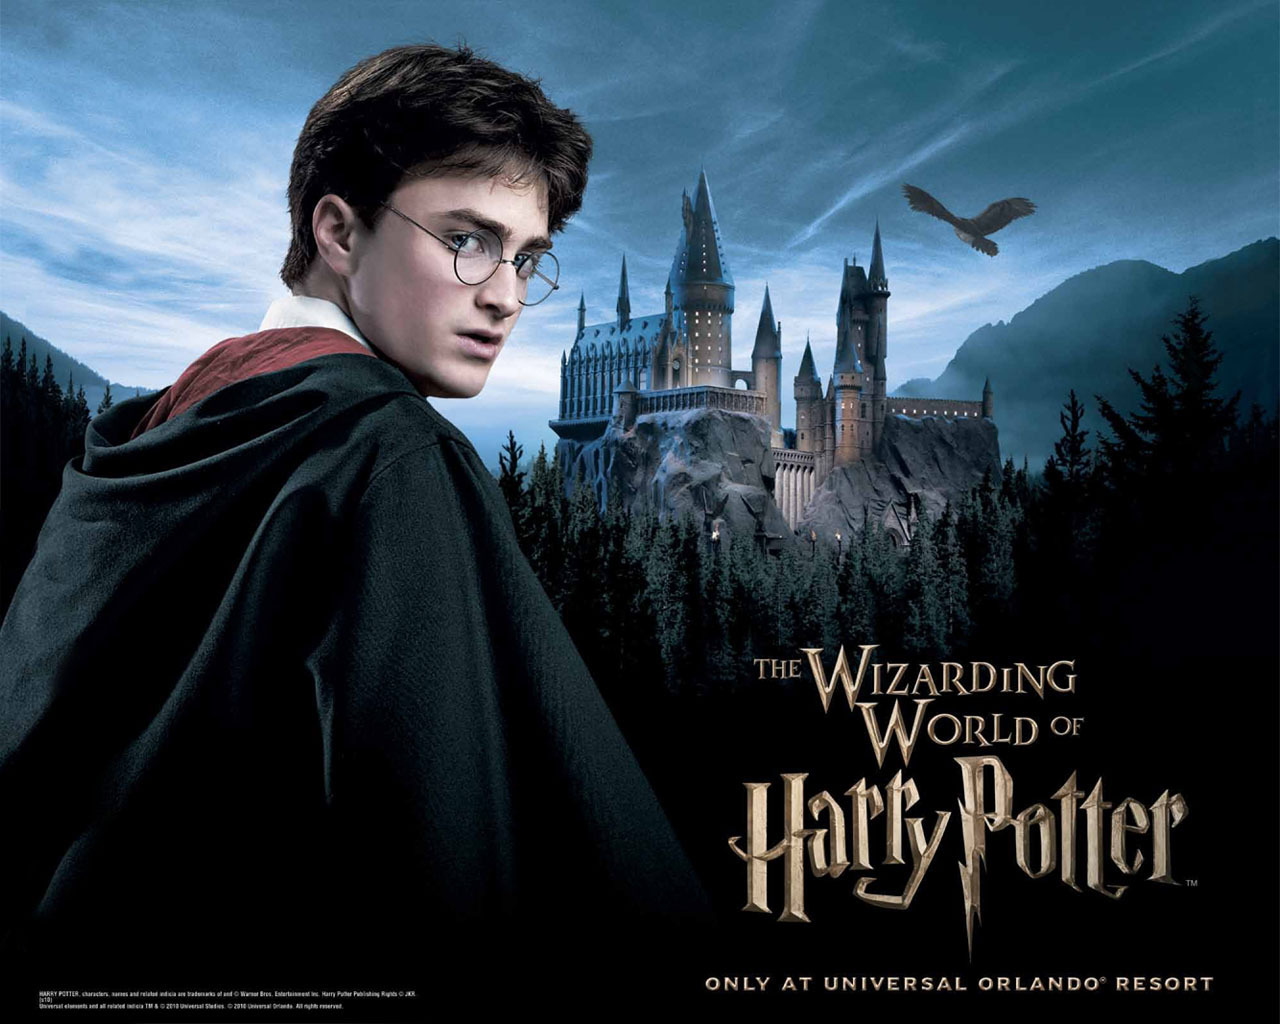 images Wizarding World Wallpaper HD wallpaper and background photos 1280x1024